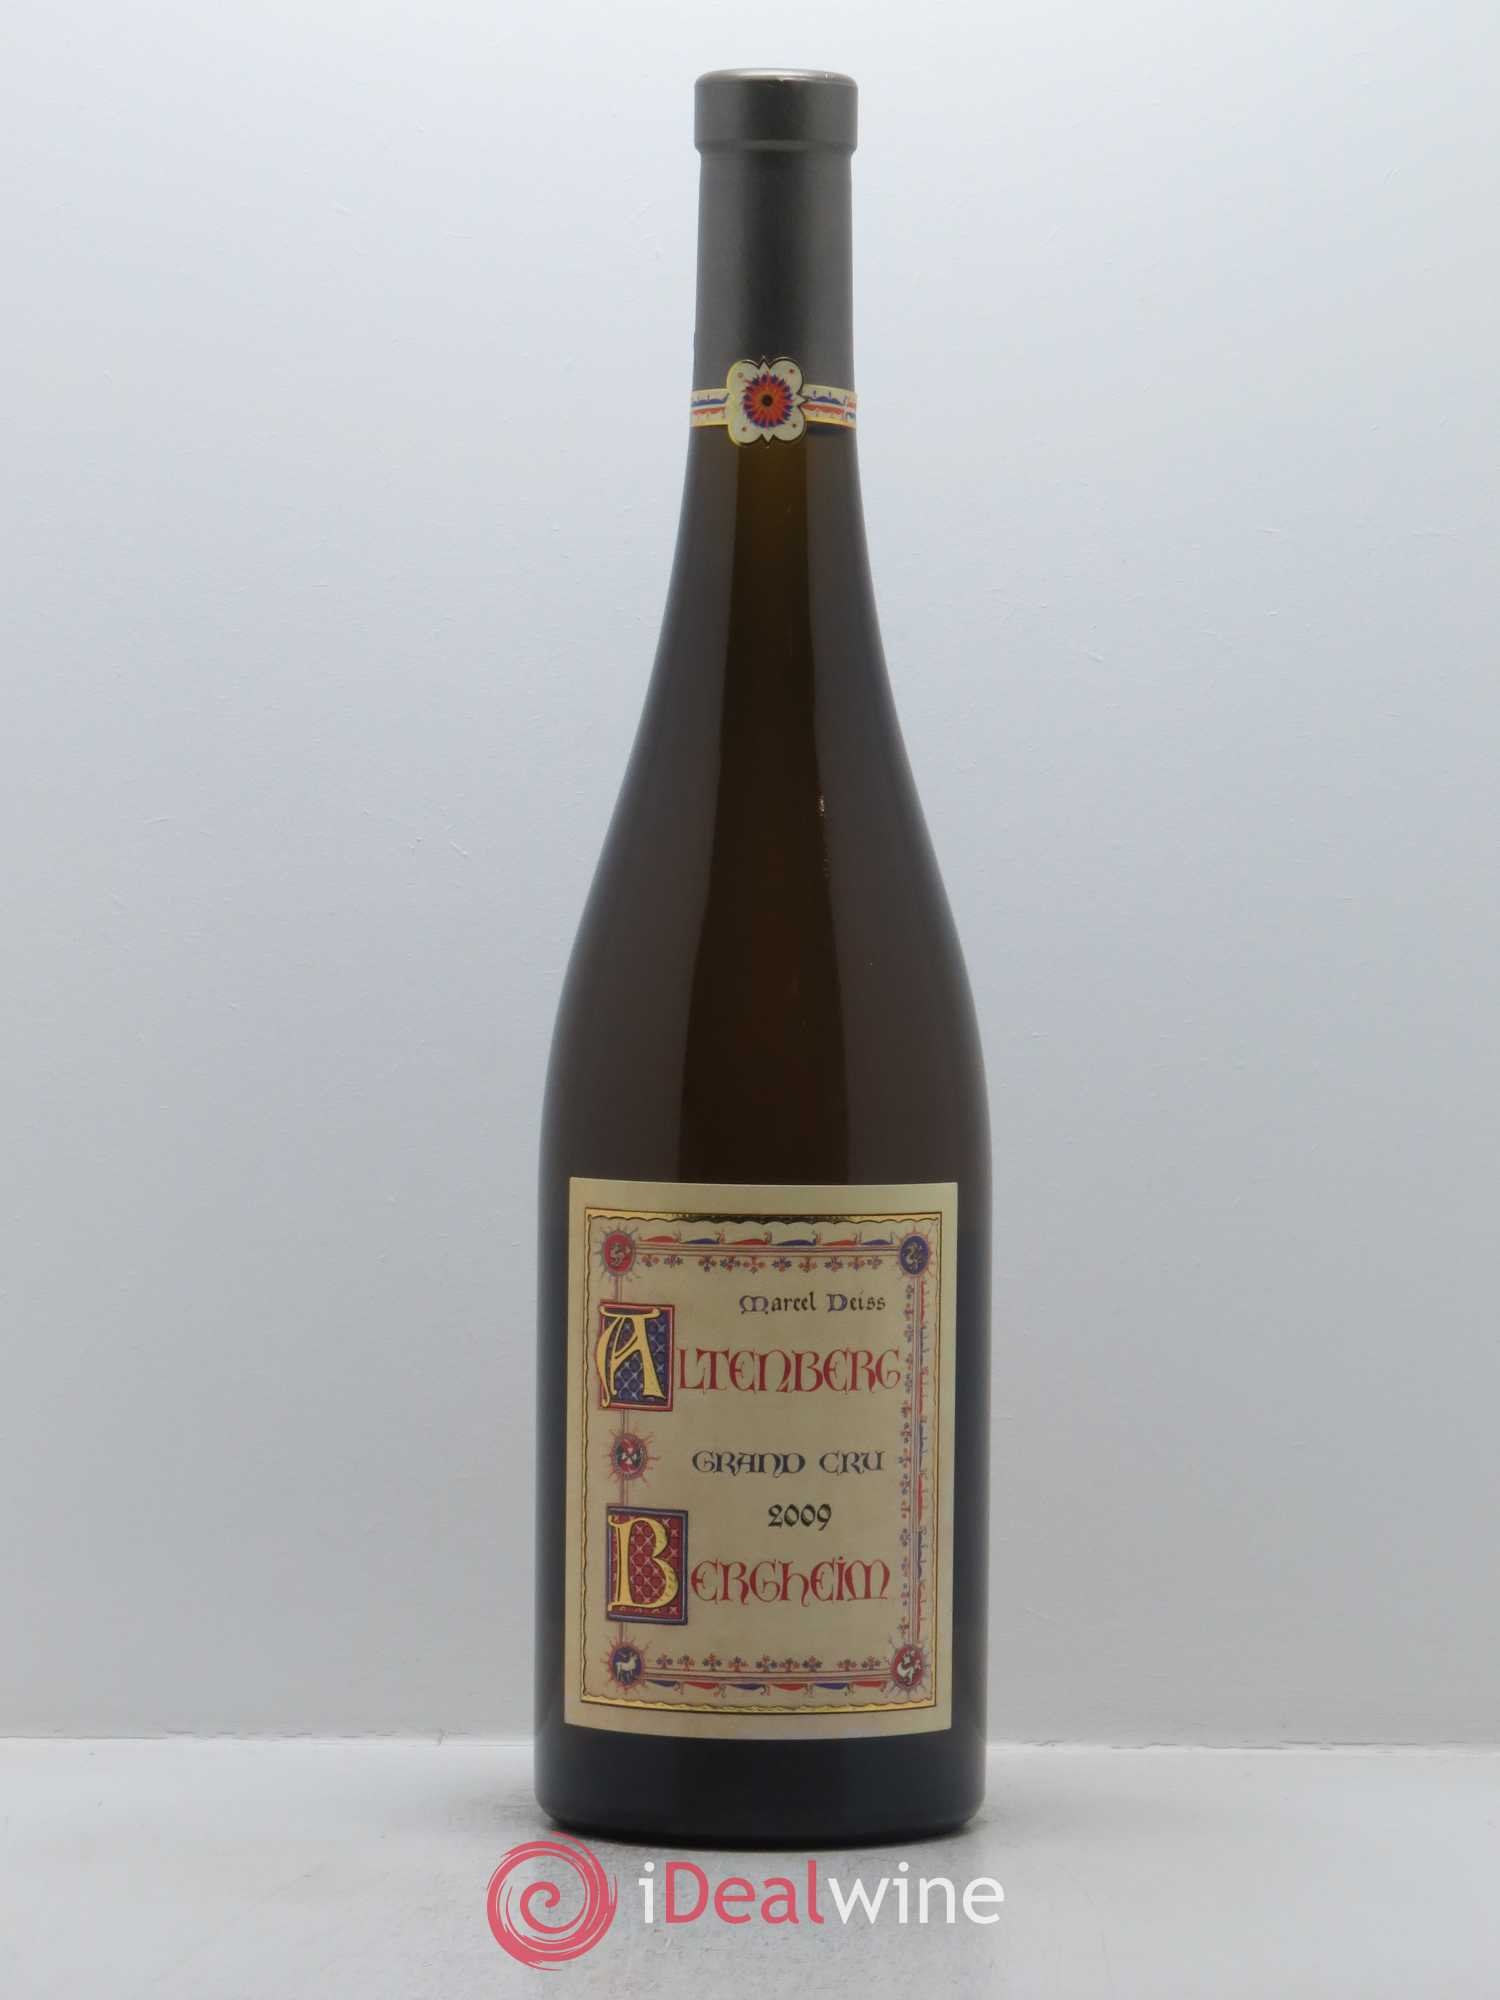 Altenberg de Bergheim Grand Cru Marcel Deiss (Domaine)  2009 - Lot of 1 Bottle